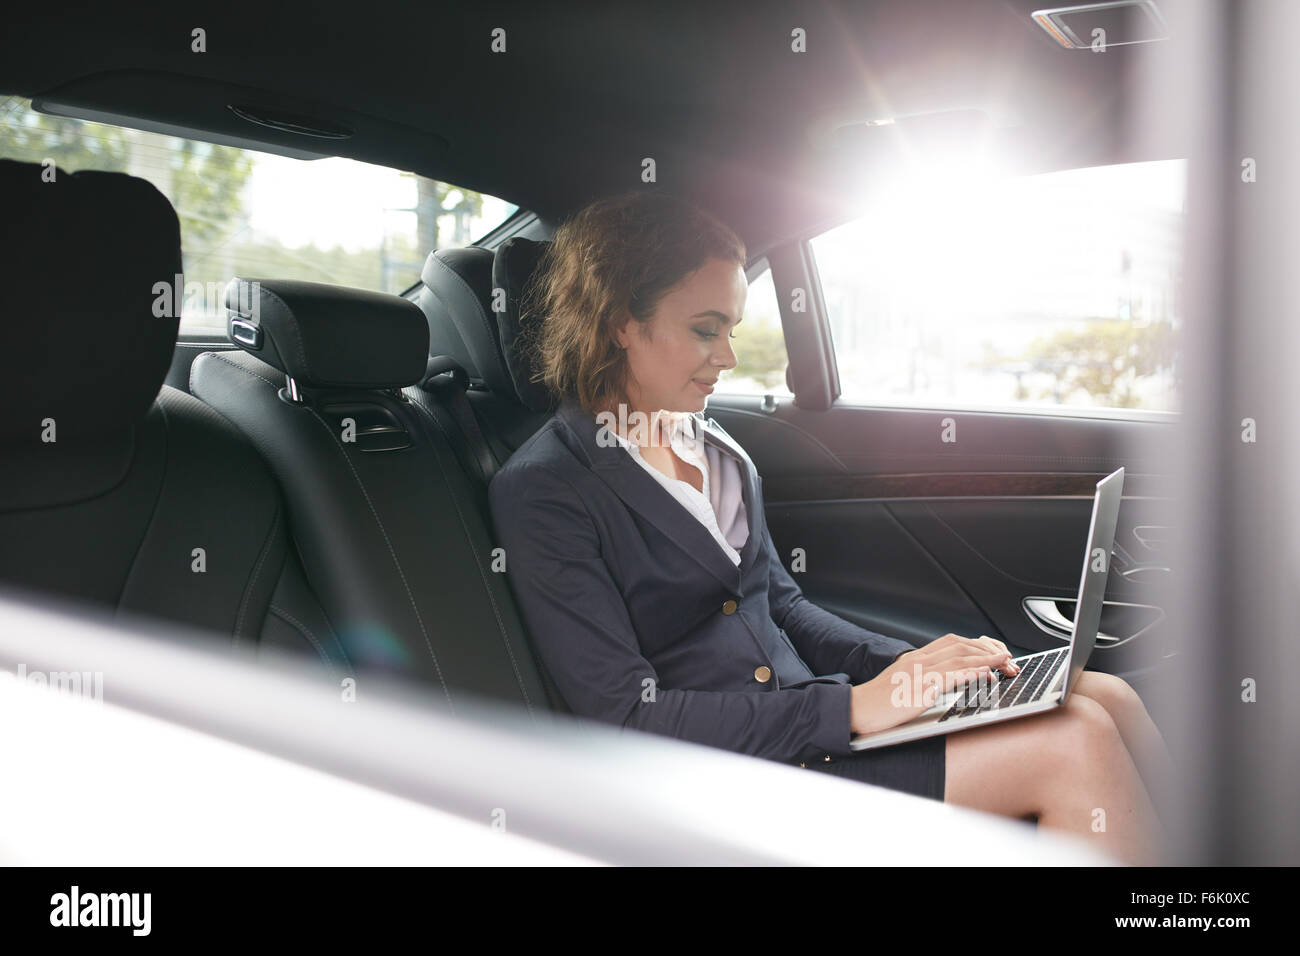 Shot of young businesswoman working on laptop inside a car. Business associate travelling to work in a car checking - Stock Image